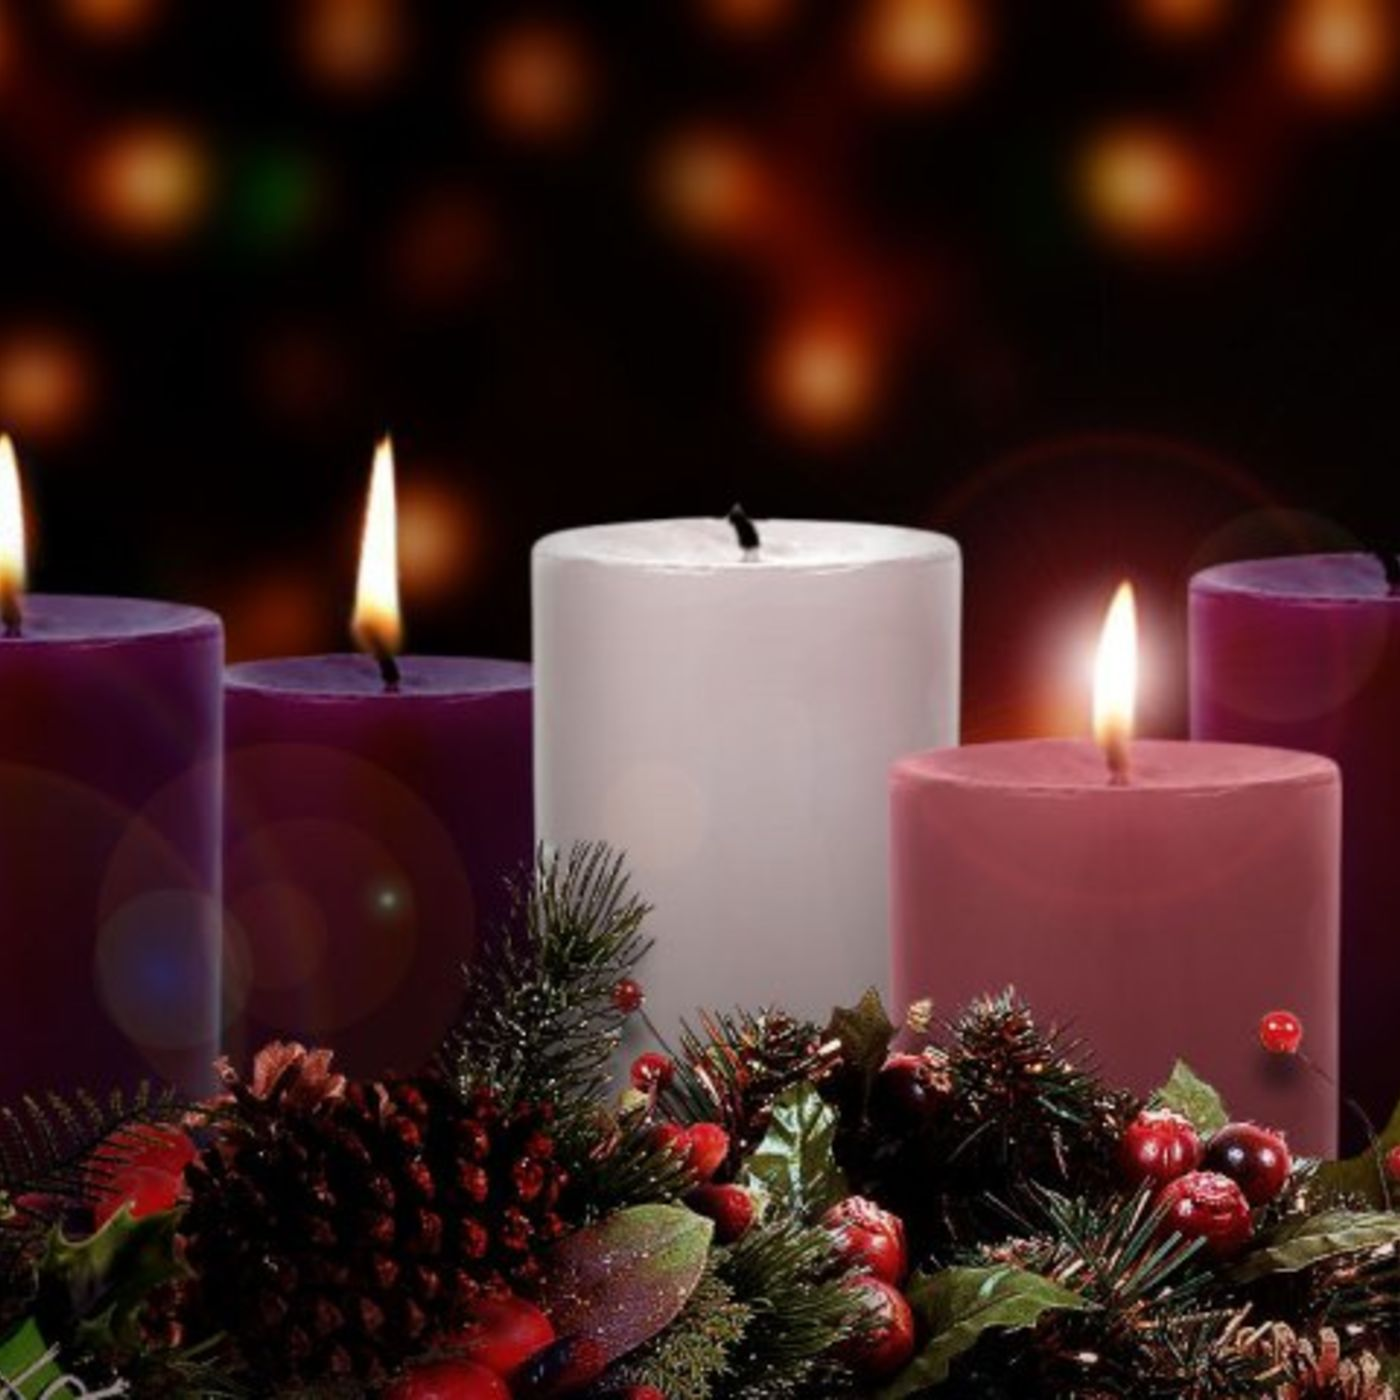 Evening Service 16th December 2018, Pause for Advent